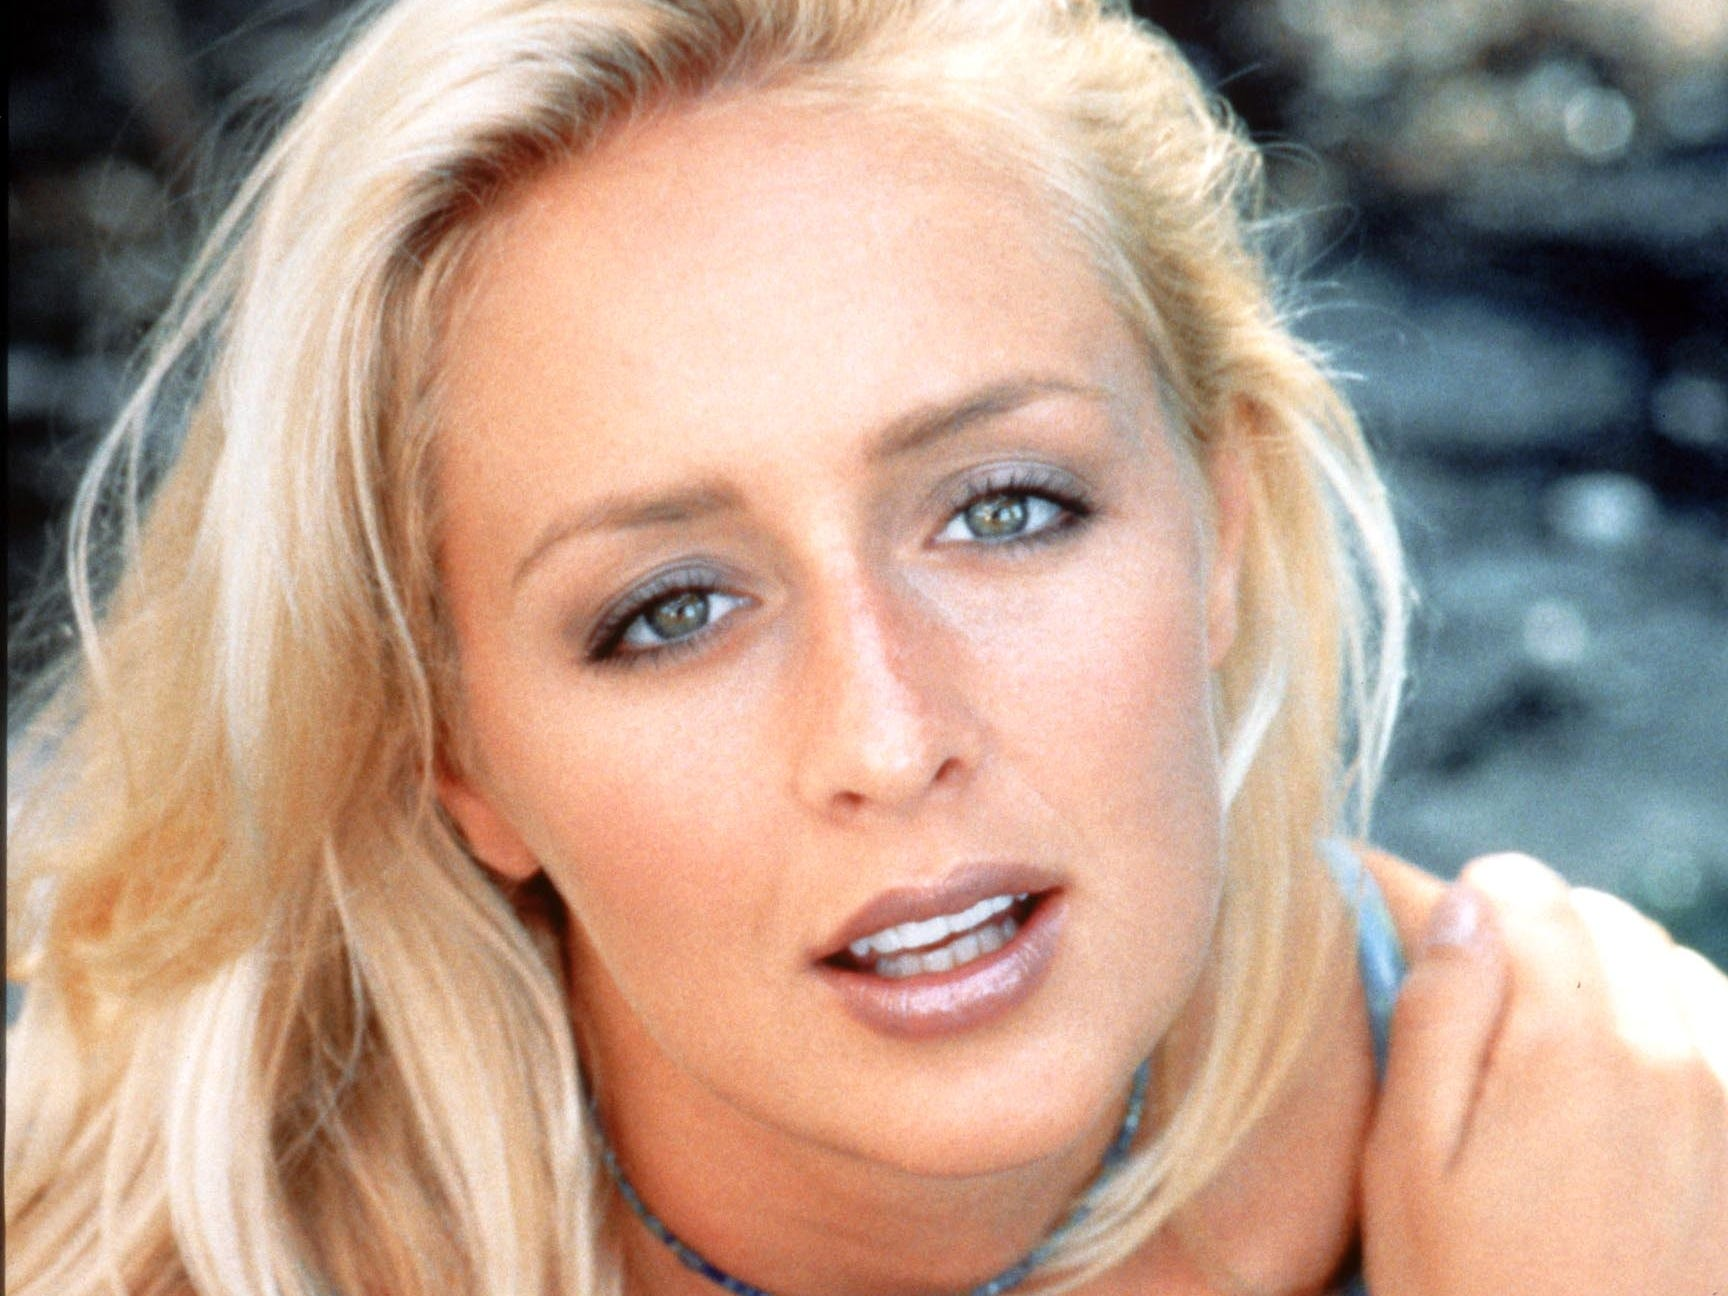 Country singer Mindy McCready, seen here in a 1997 photo, died Sunday of an - xxx-d06g3up04-10p3x19lines-4_3